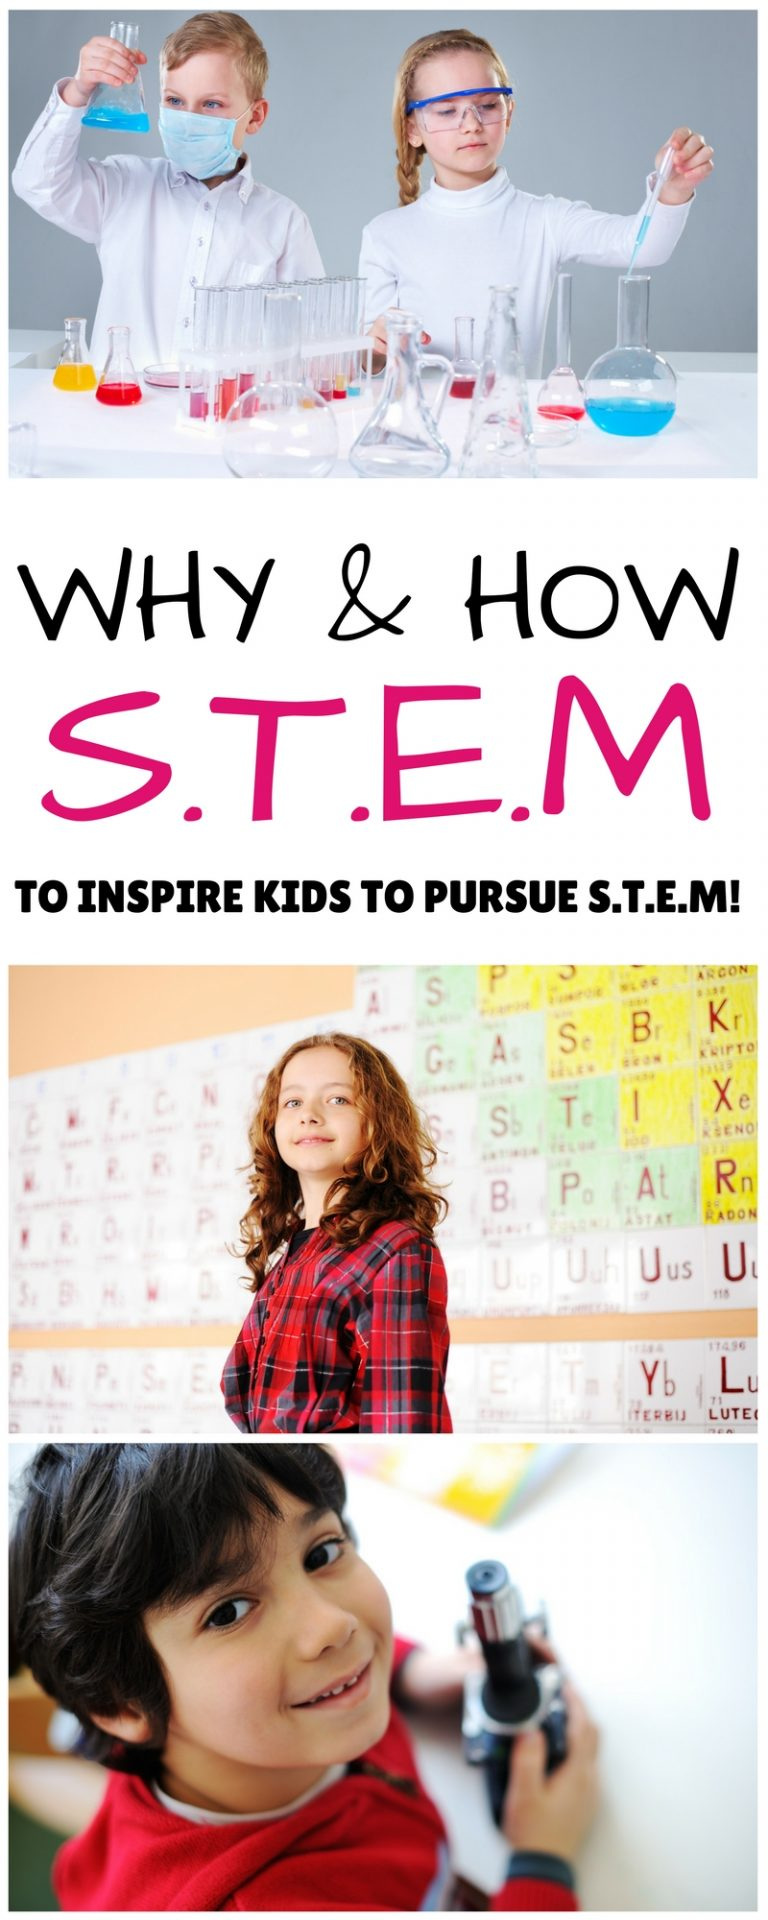 A fresh look at why S.T.E.M. learning is so important! S.T.EM. activities for kids and inspiration to help you and your kid learn to love it!